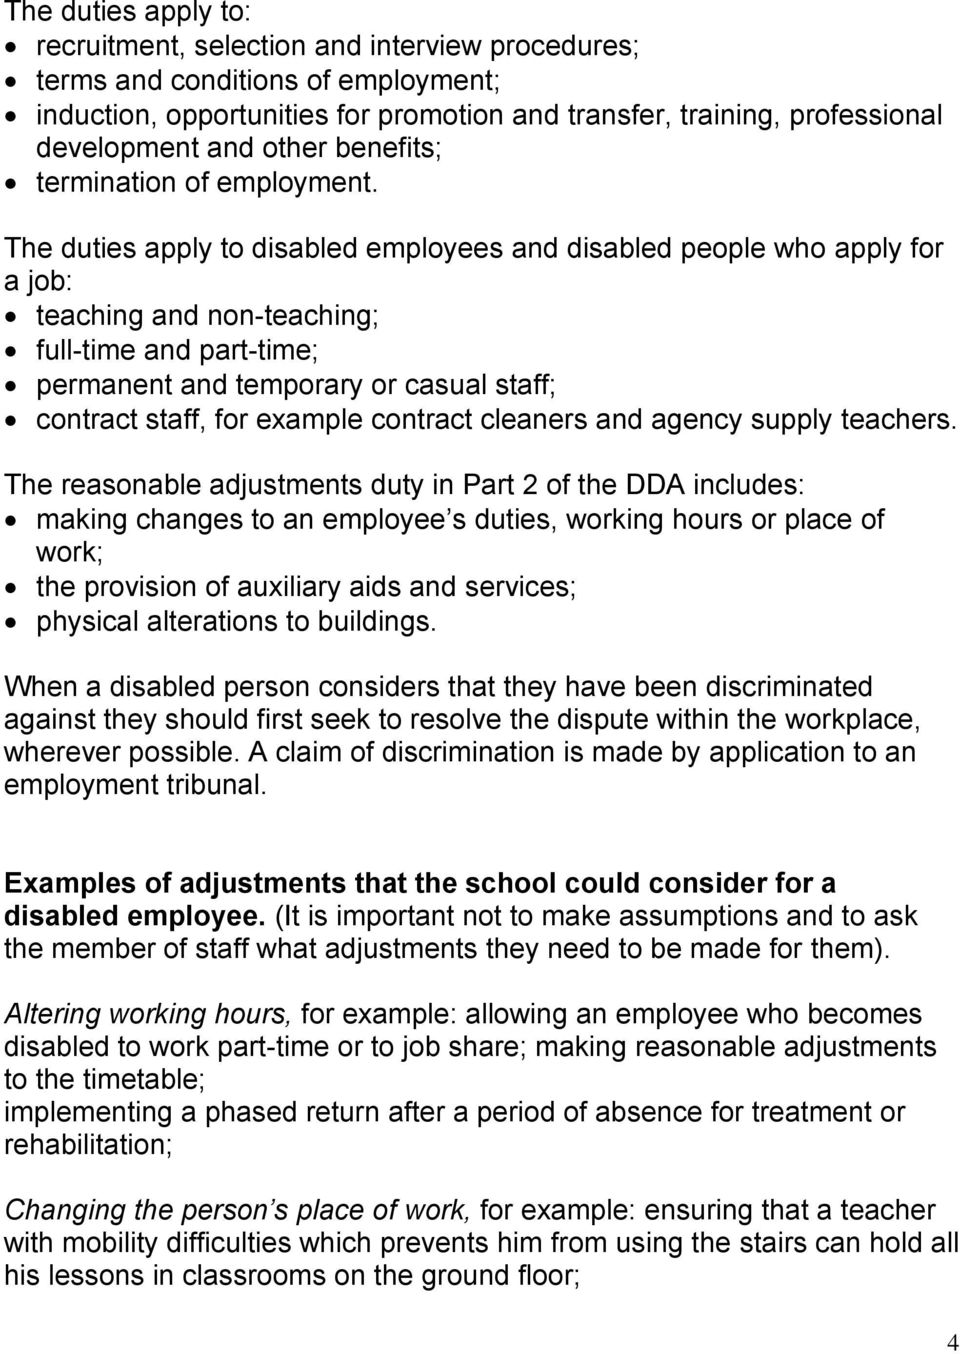 The duties apply to disabled employees and disabled people who apply for a job: teaching and non-teaching; full-time and part-time; permanent and temporary or casual staff; contract staff, for